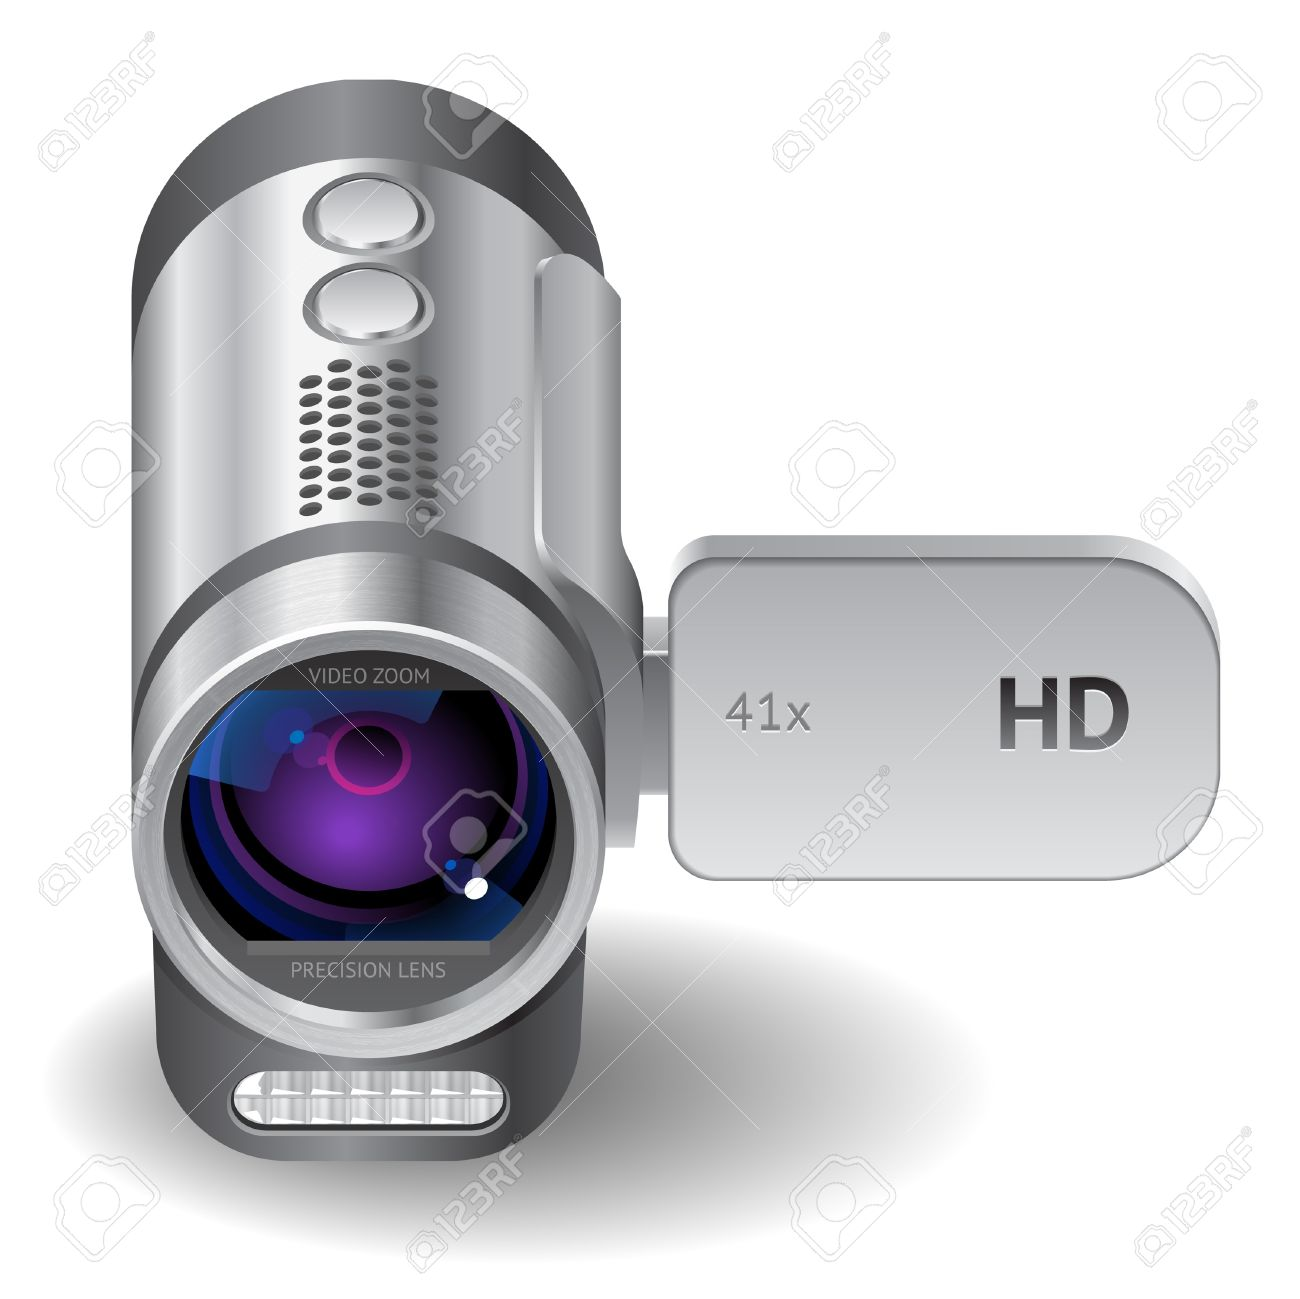 Icon for camcorder. White background.  file contains objects with transparency. Stock Vector - 15658617